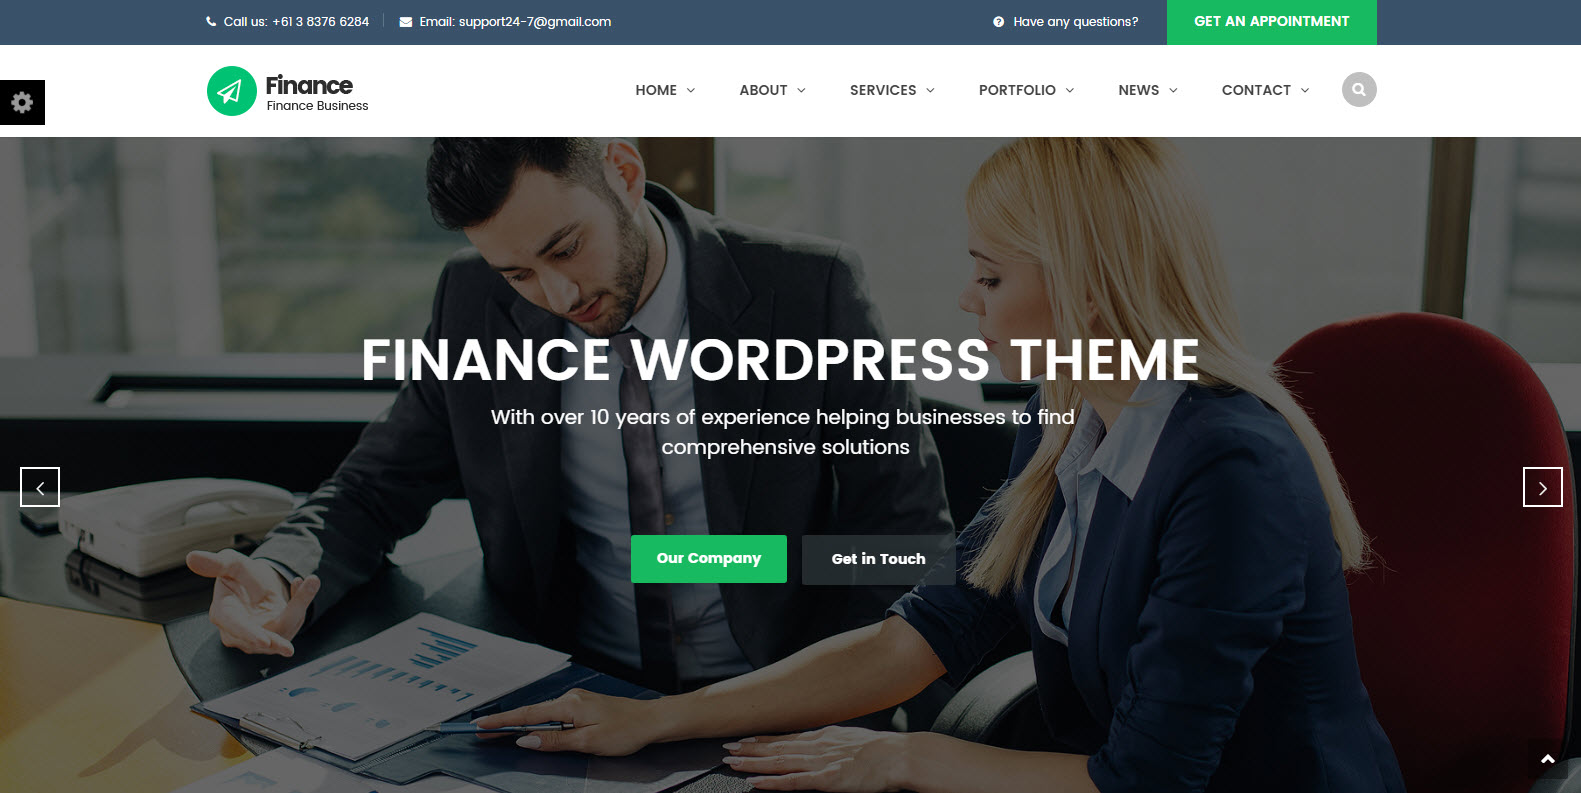 finance wordpress theme - consulting wordpress theme - marketing wordpress theme free